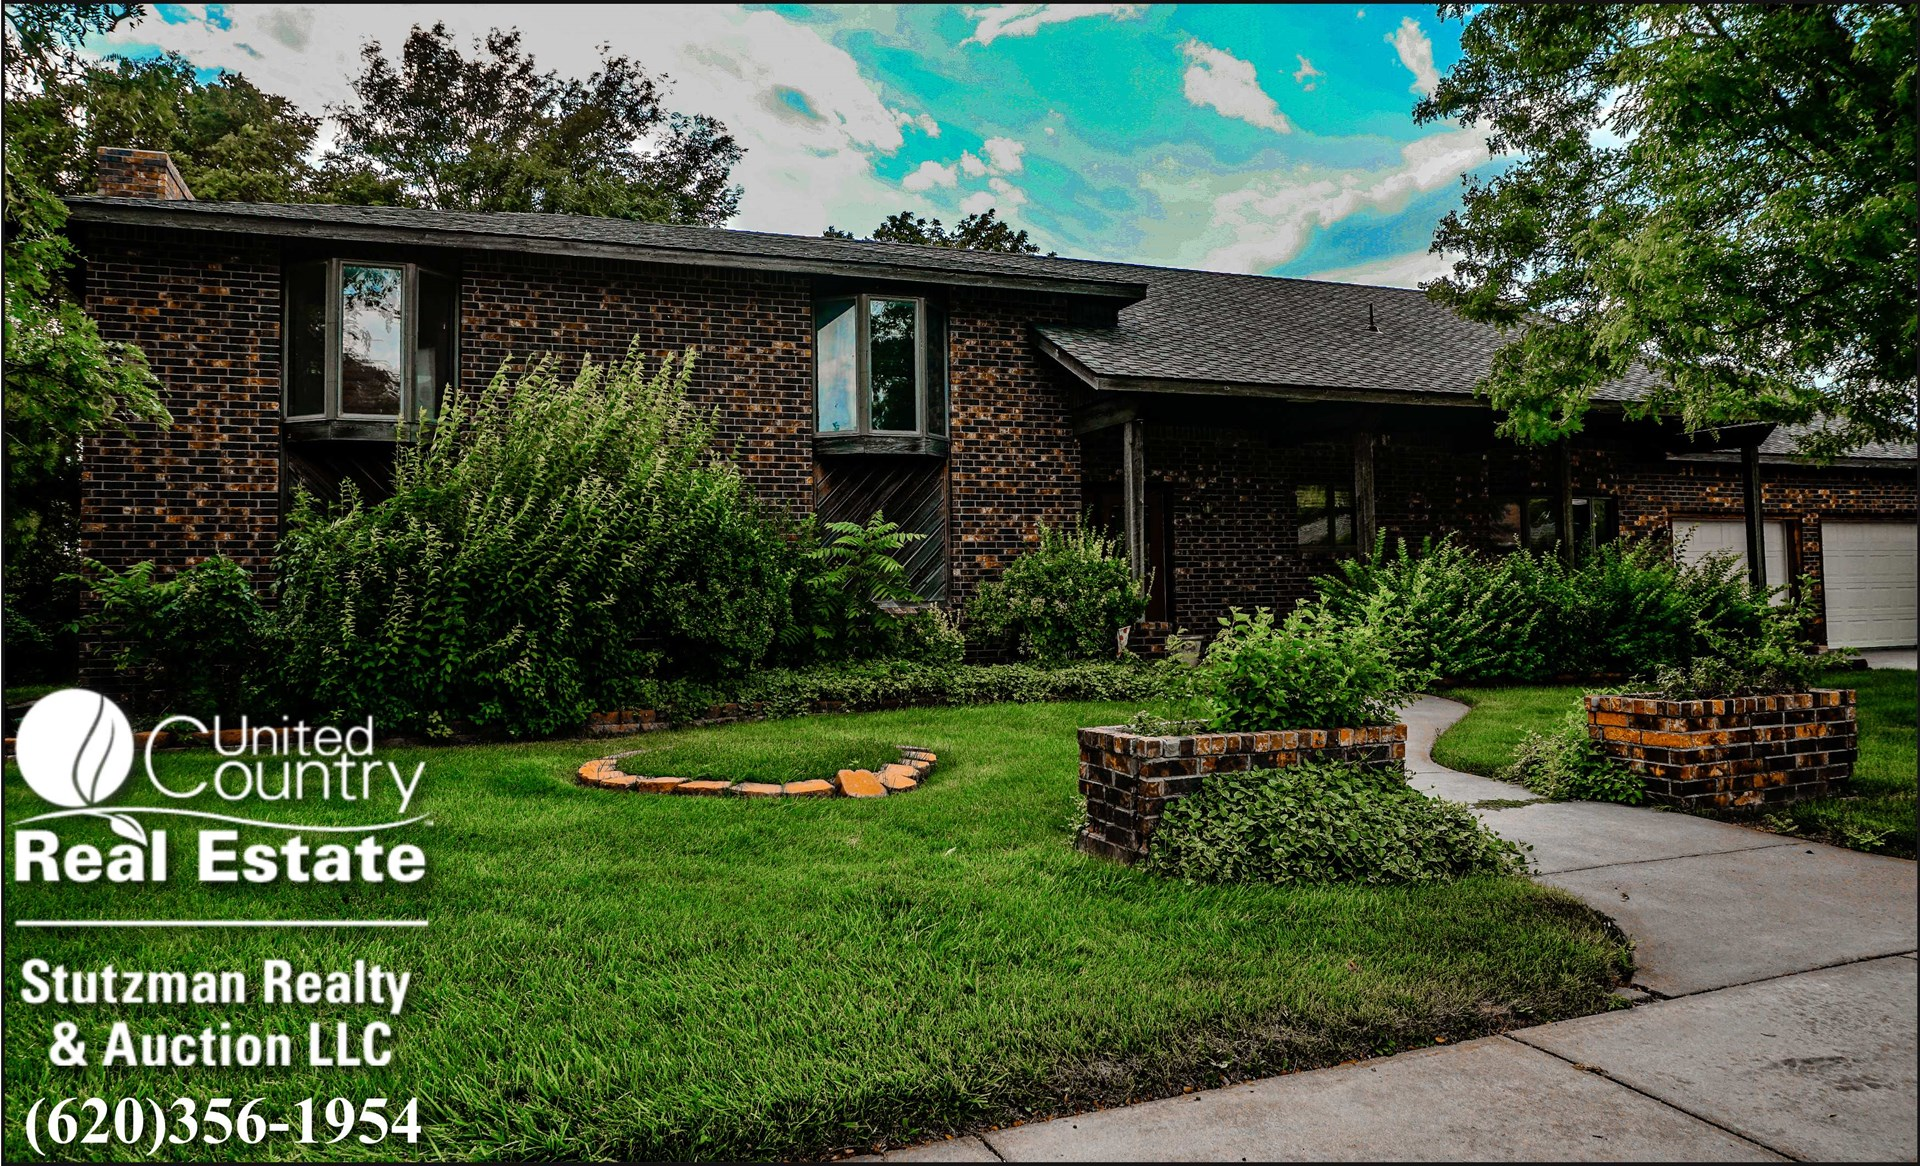 WELL MAINTAINED AND SPACIOUS HOME FOR SALE IN ULYSSES, KS